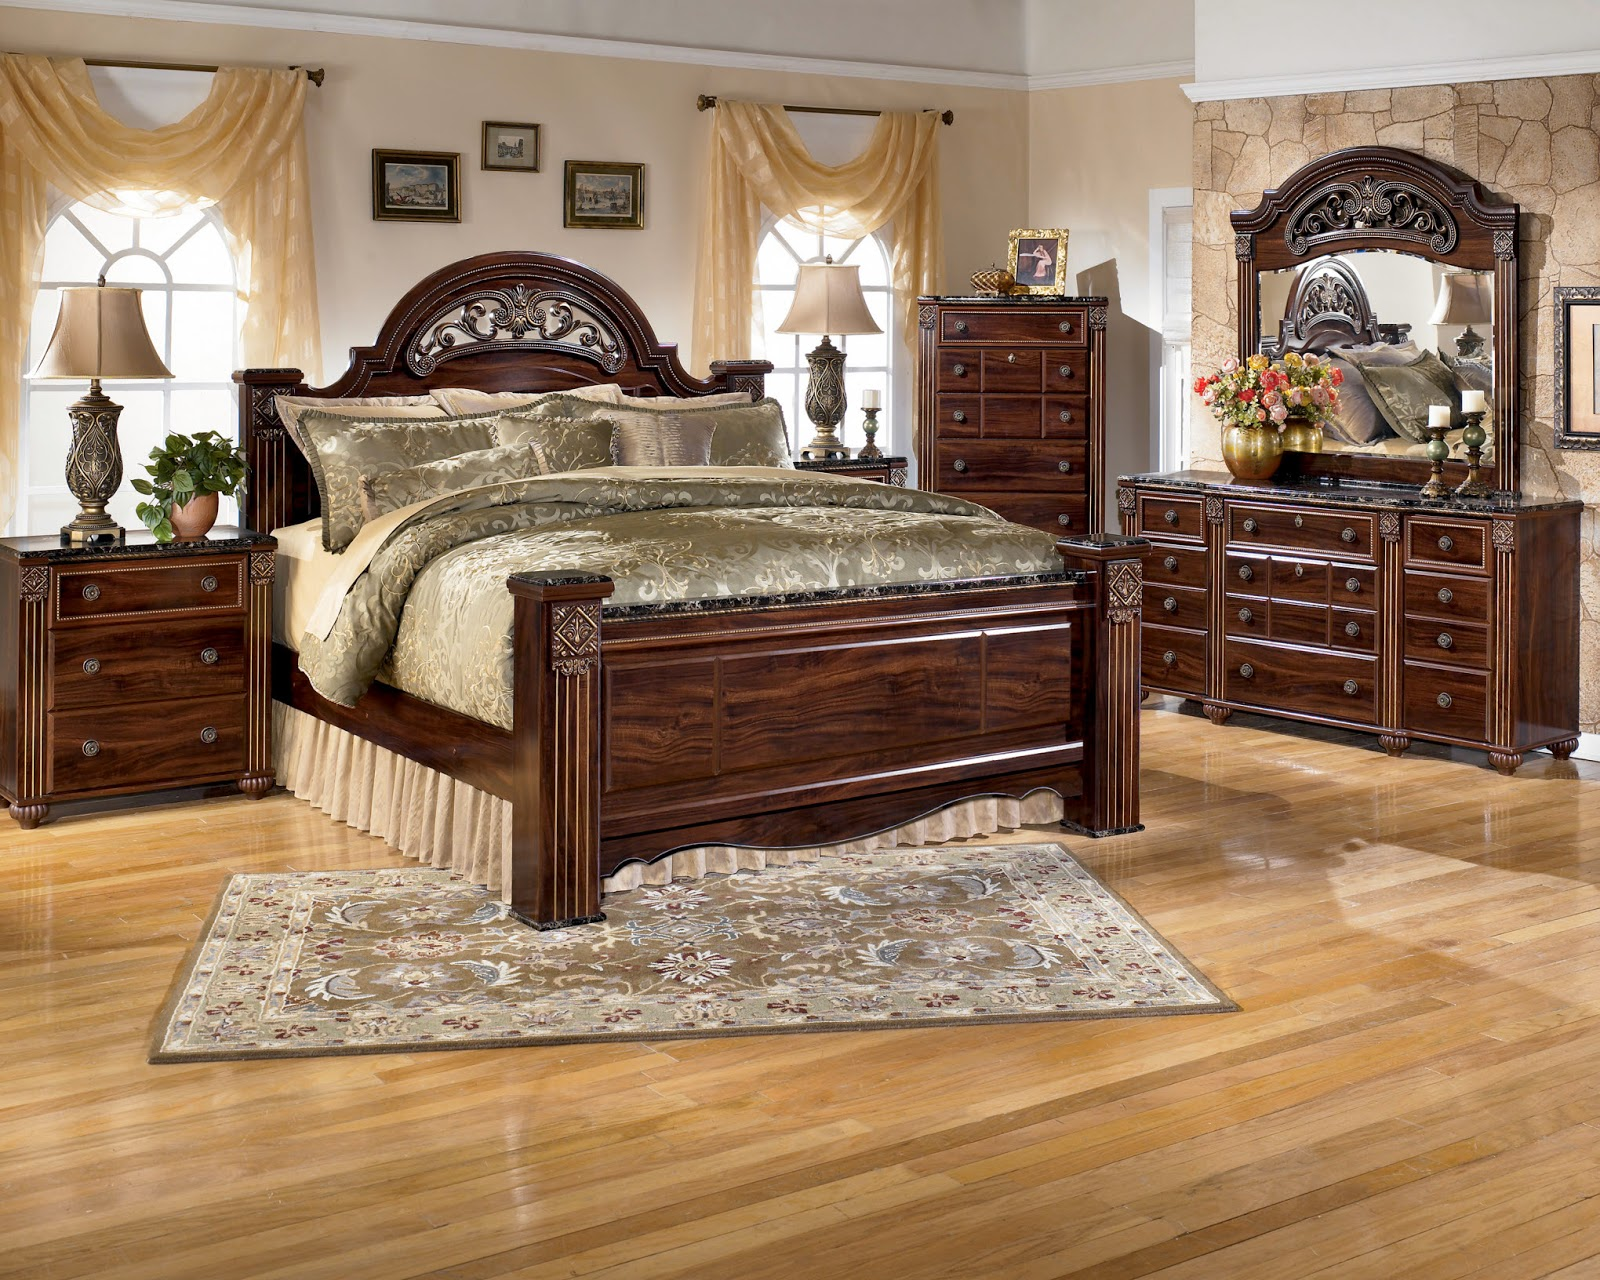 Ashley Furniture Bedroom Sets On Sale Popular Interior House Ideas King Size